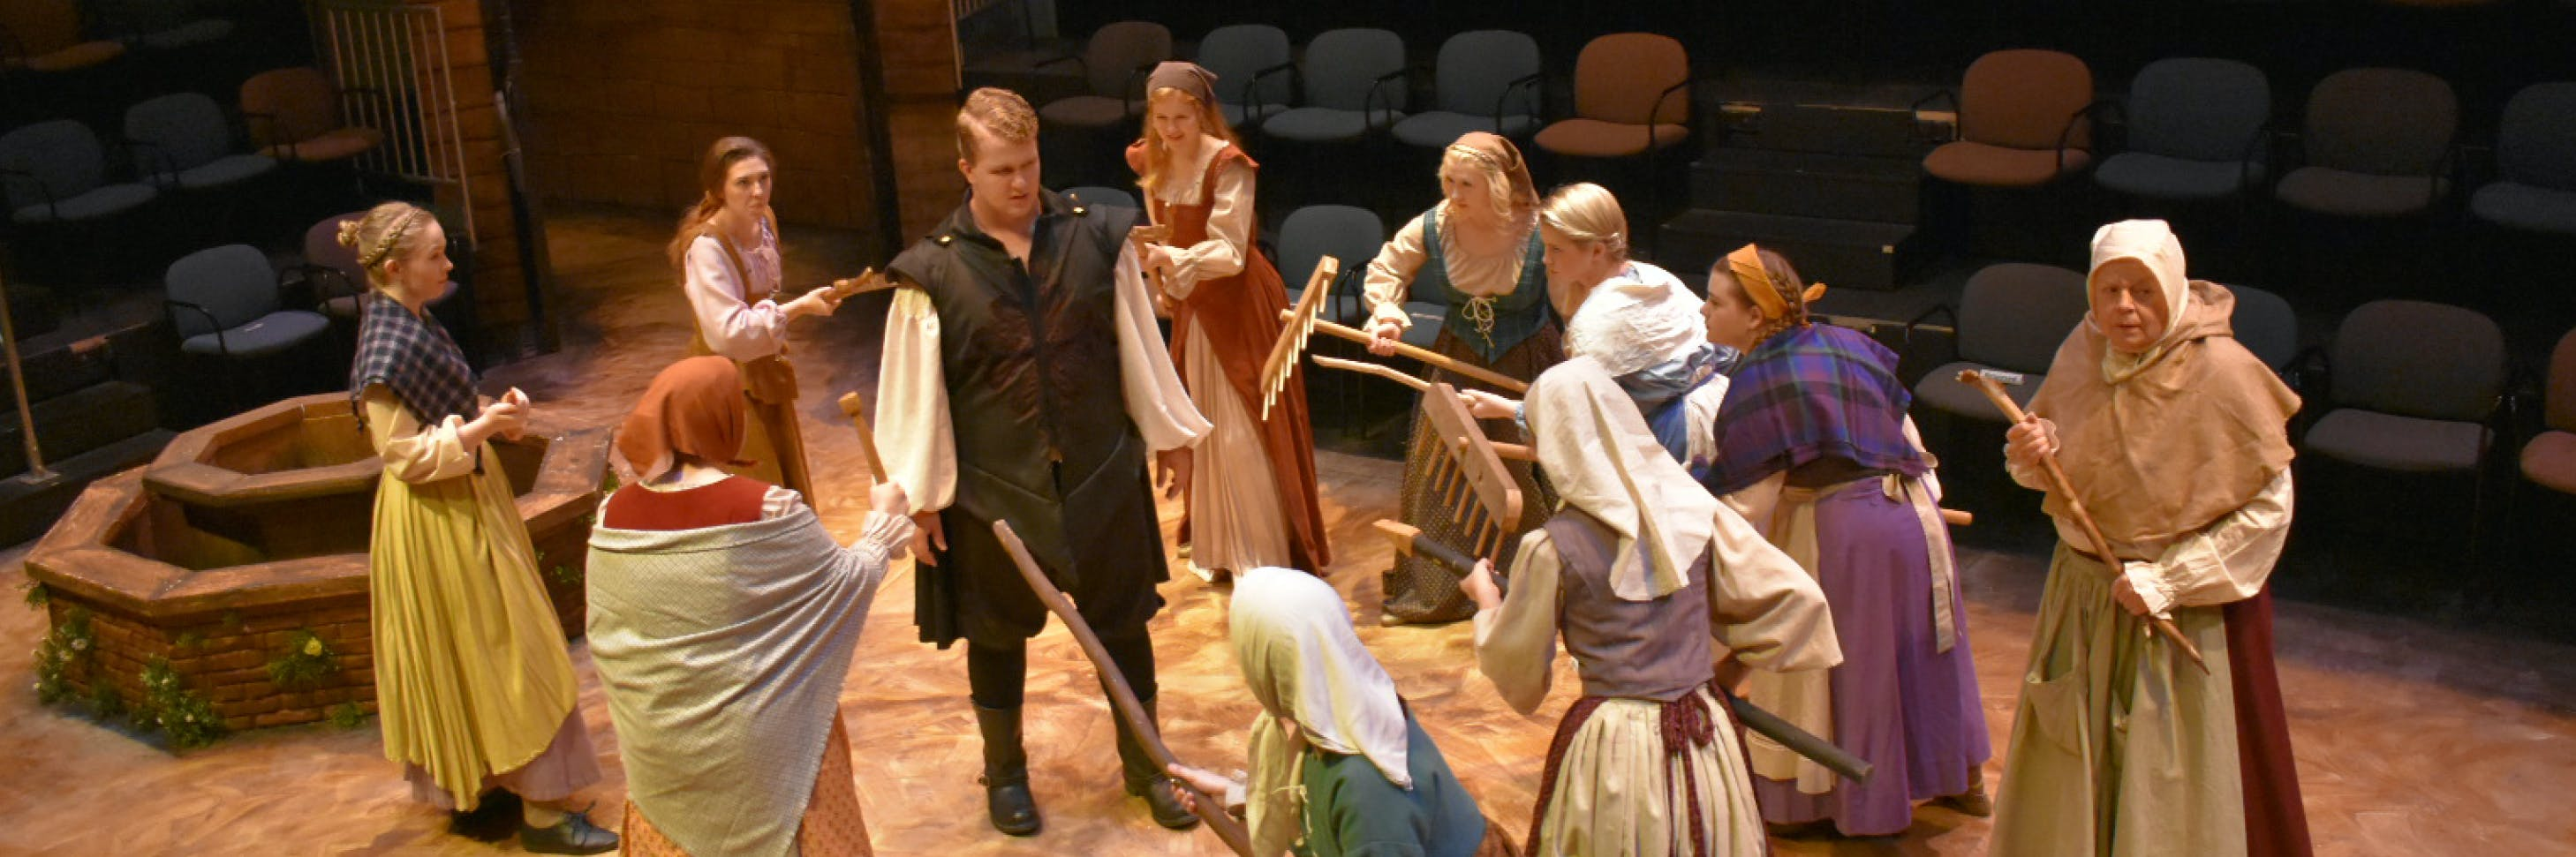 Students rehearsing in the Bethel Theatre